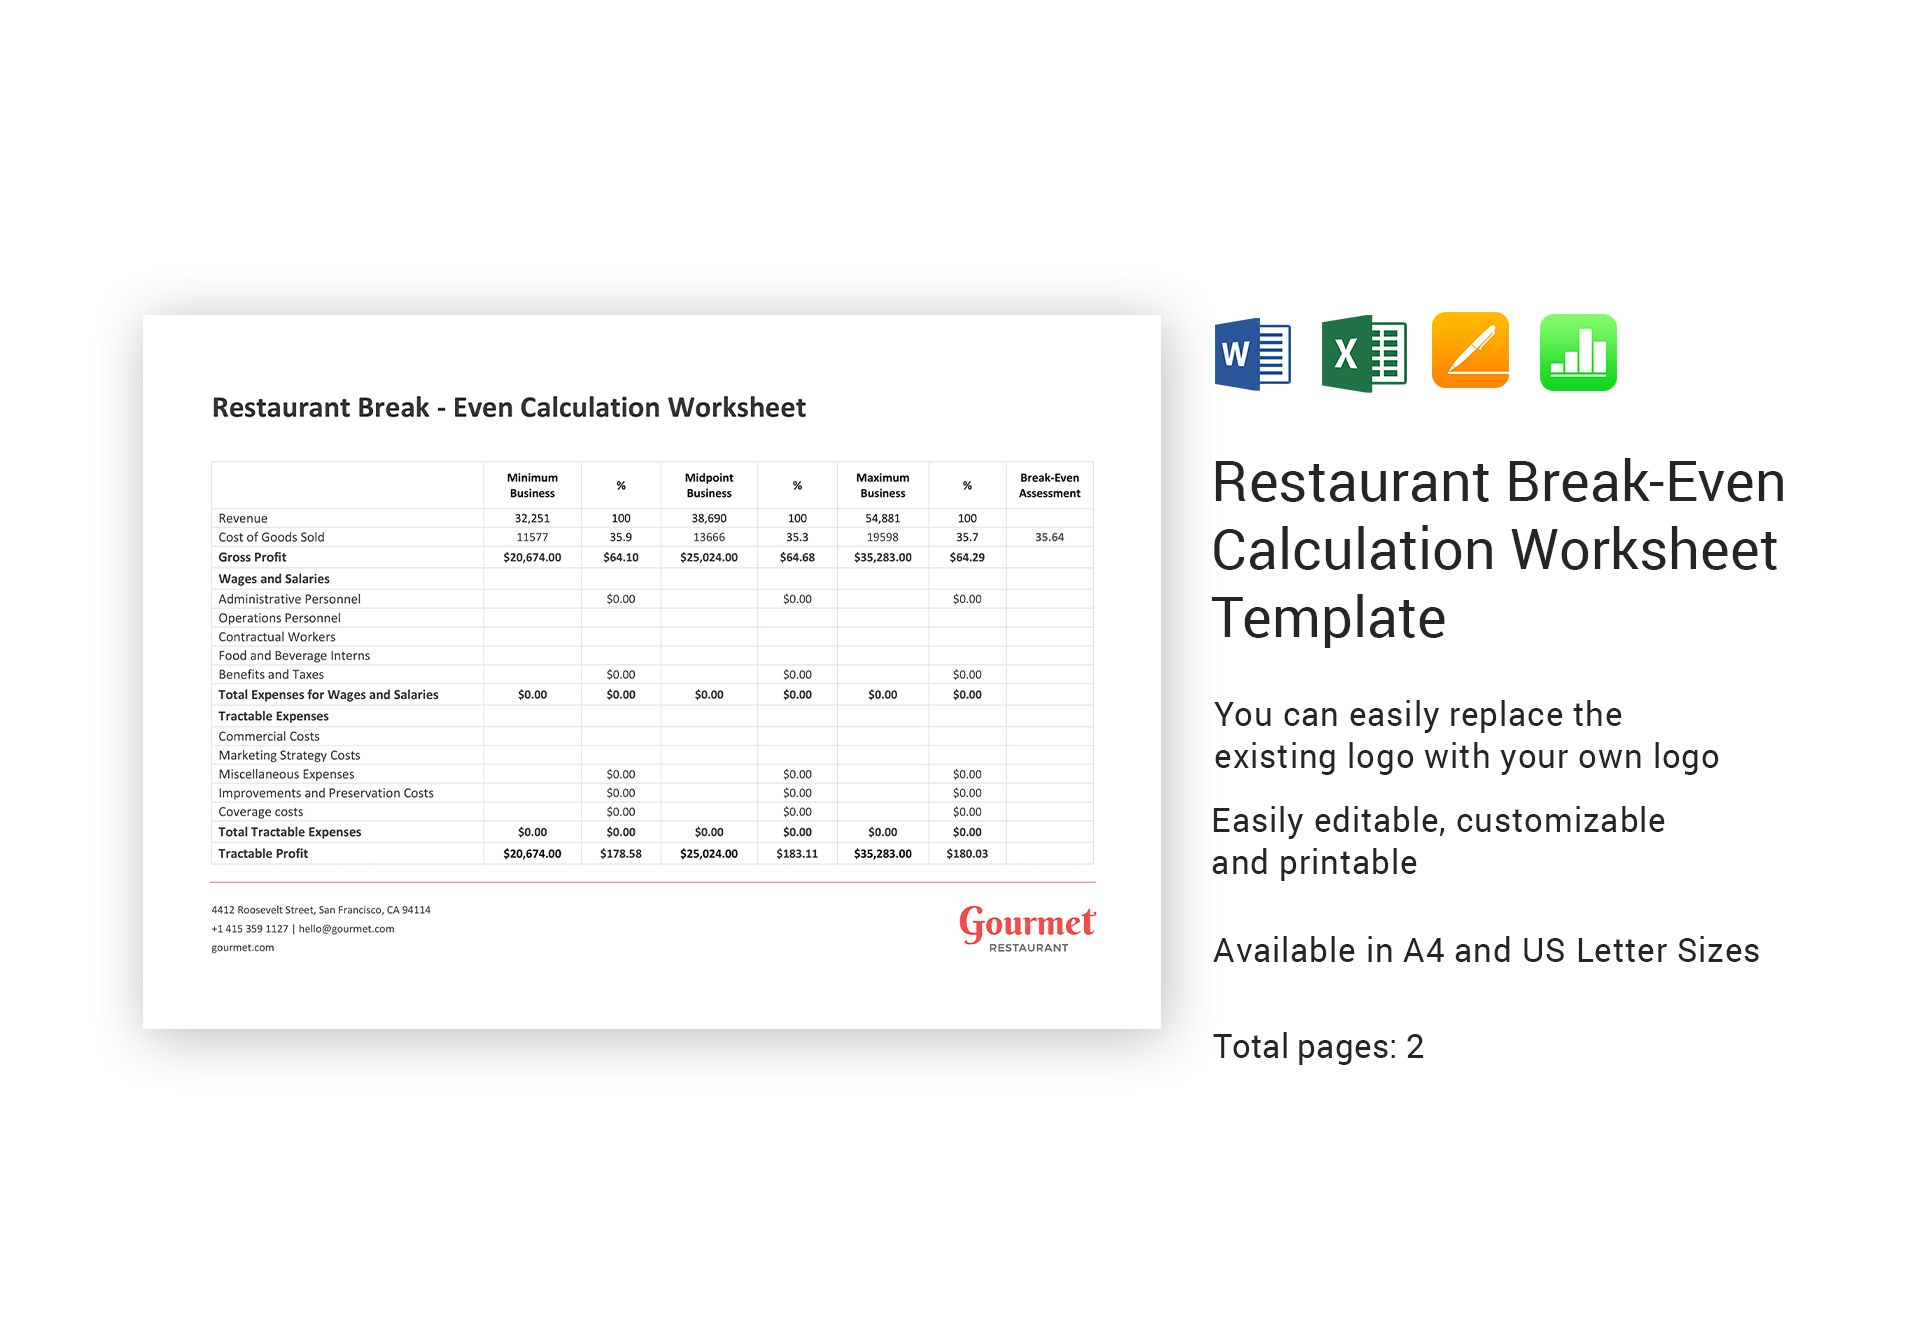 Restaurant Break Even Calculation Worksheet Template In Word Excel Apple Pages Numbers